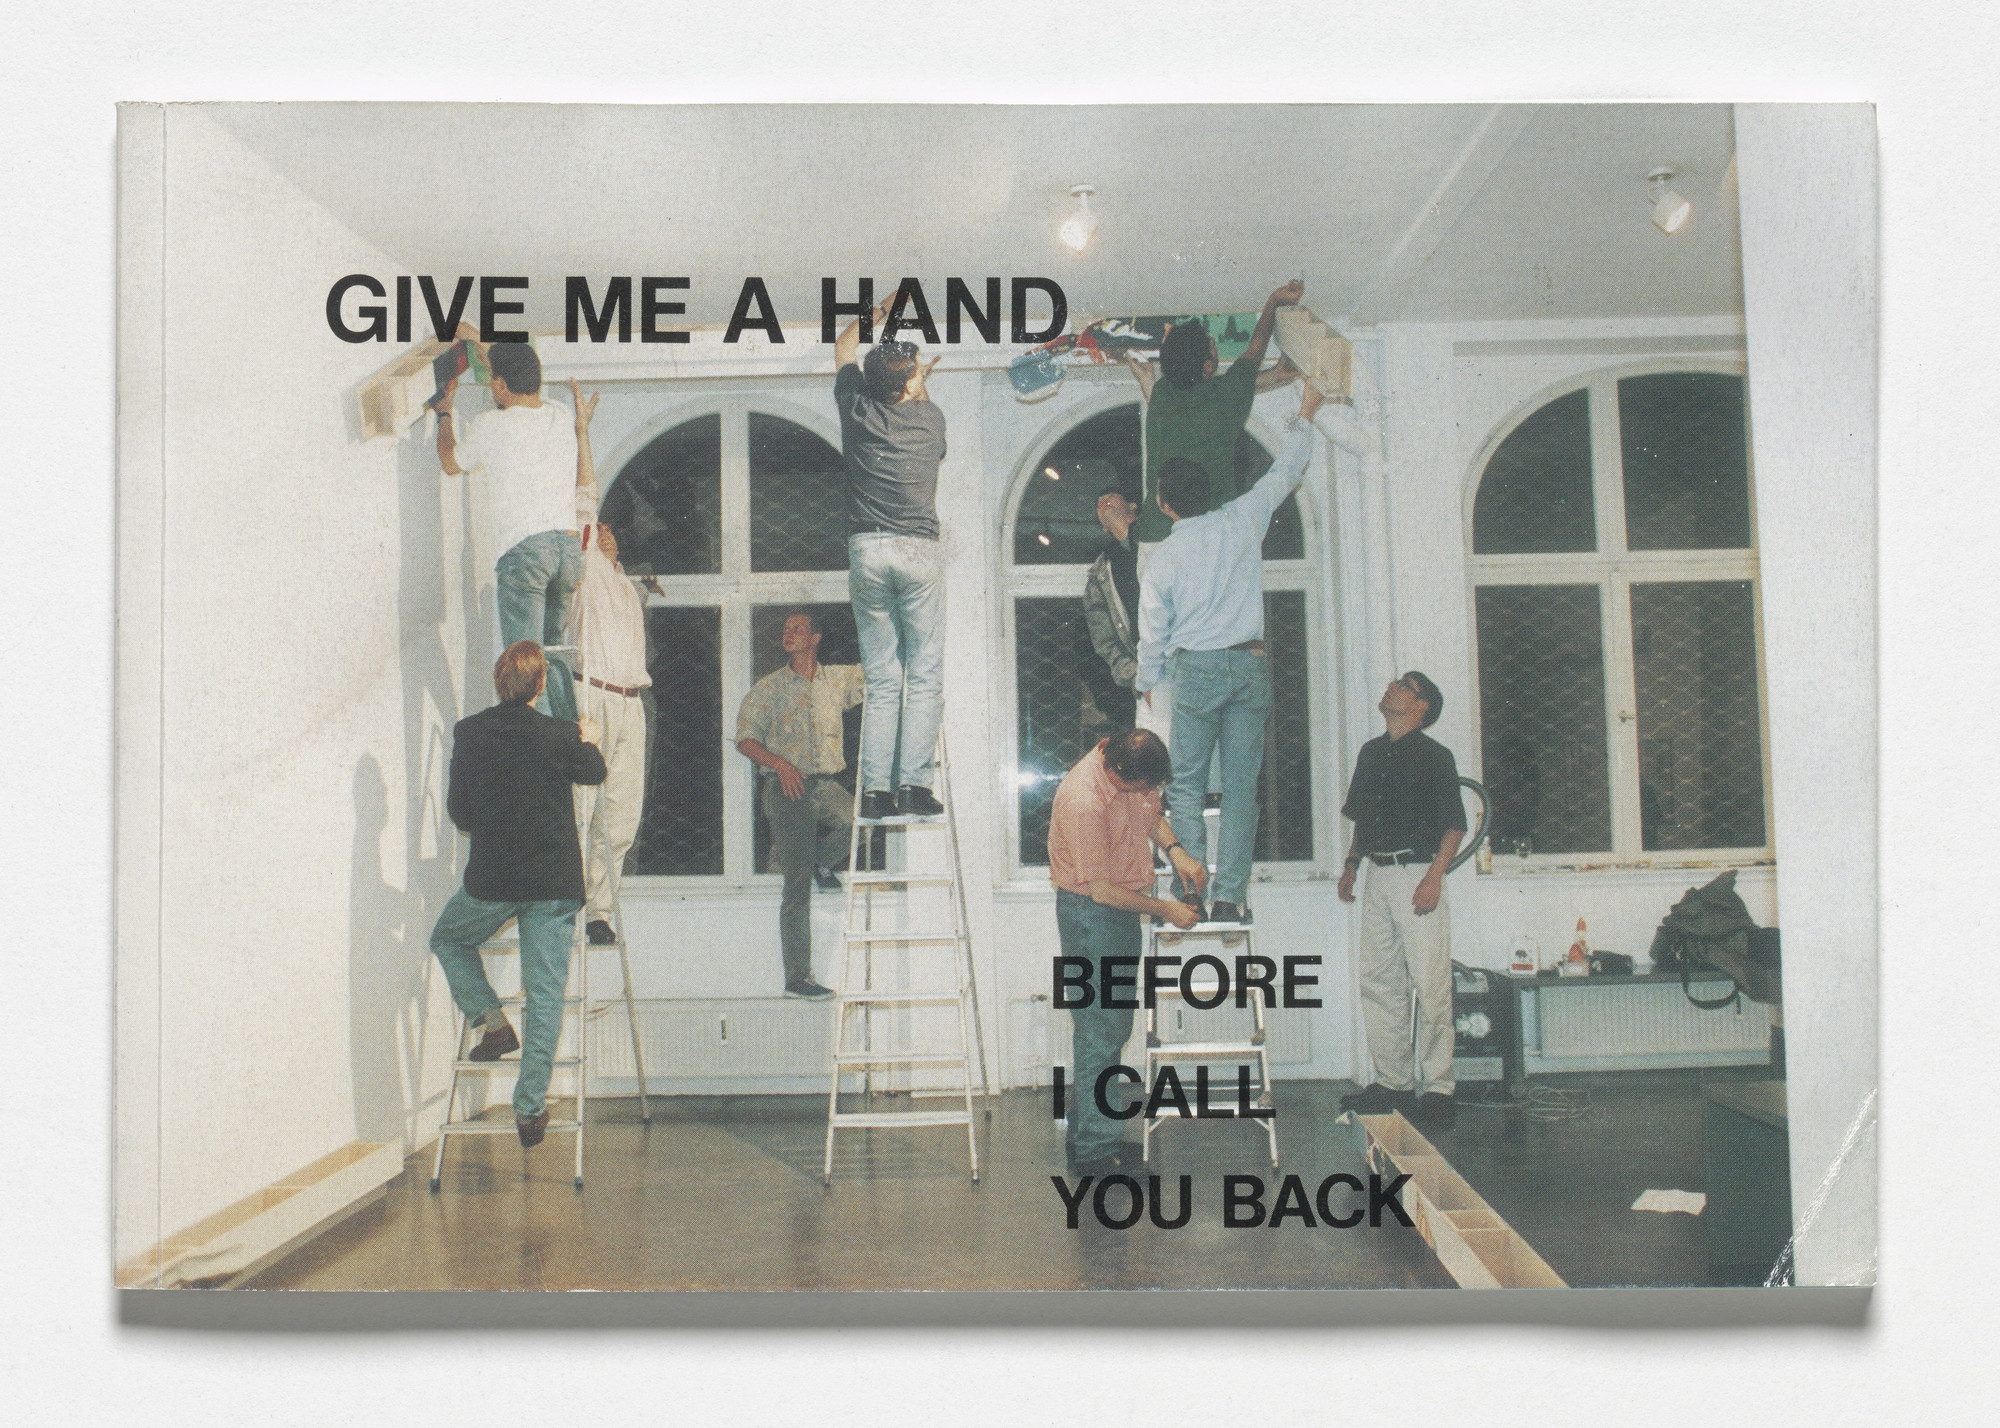 Martin Kippenberger. Give Me a Hand Before I Call You Back. 2 Semester Kippenberger,. 1991